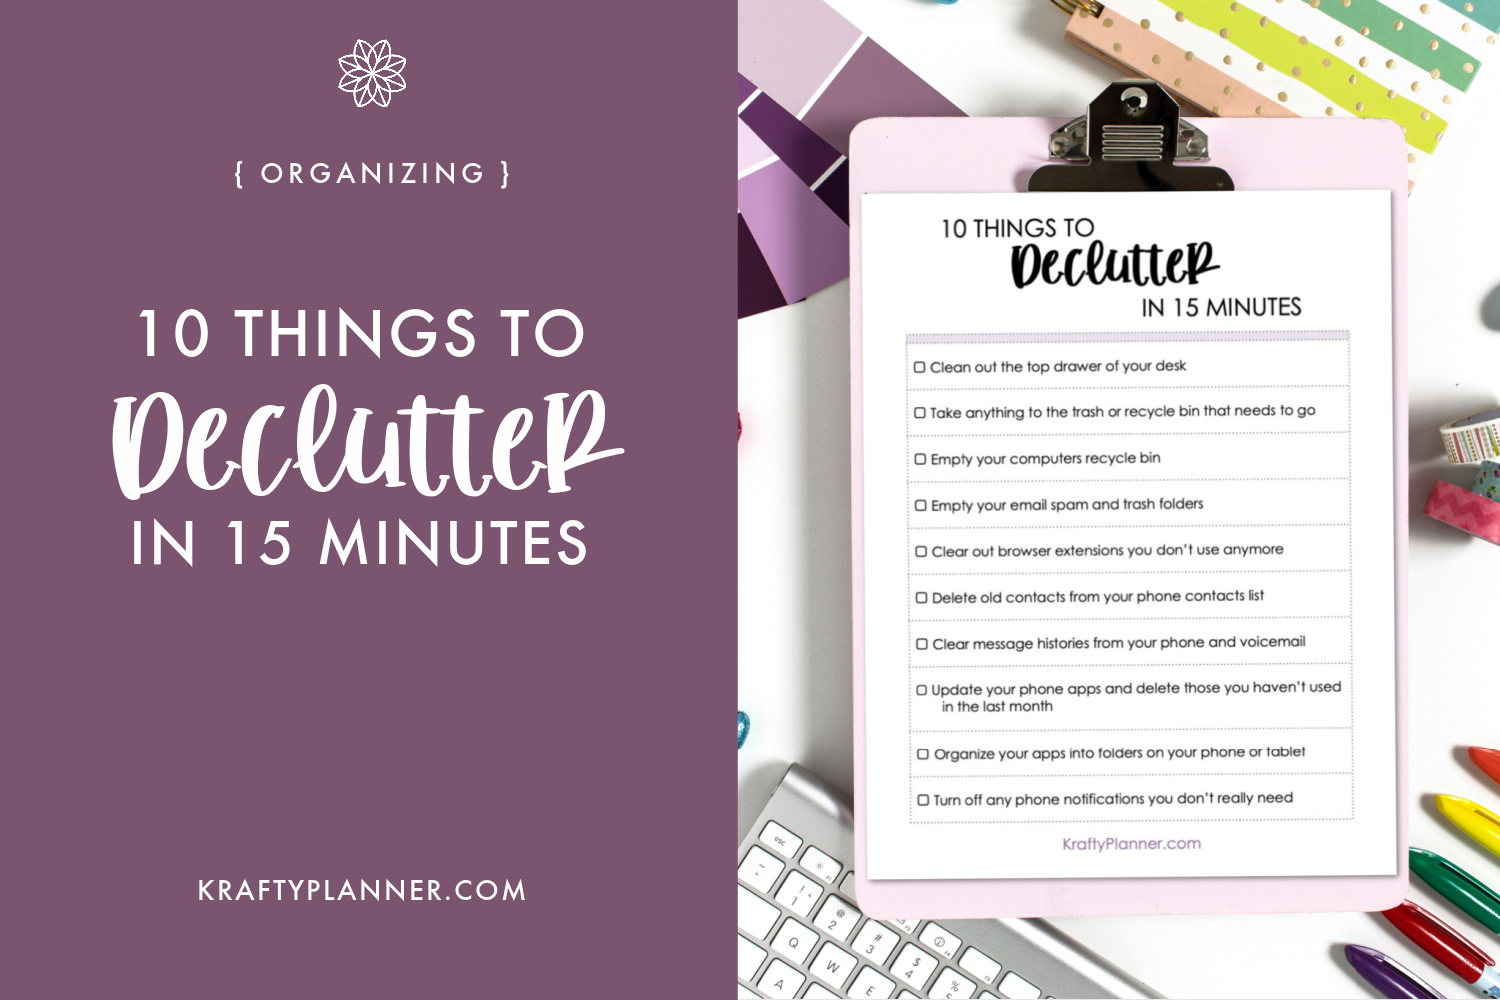 10 Things to Declutter in 15 Minutes {Free Printable Checklist}